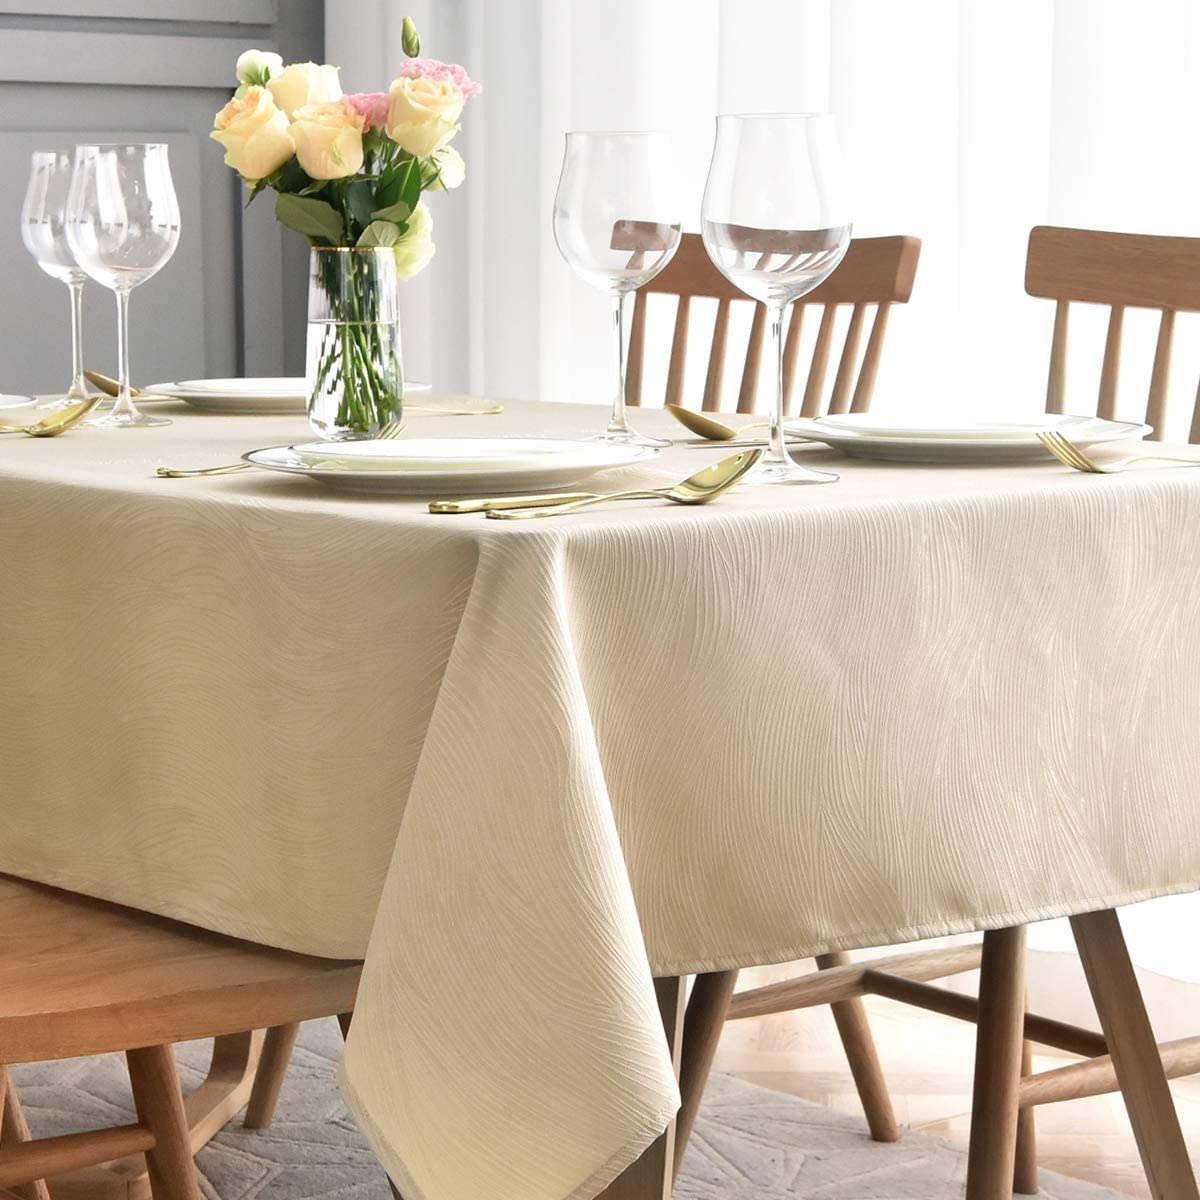 maxmill Jacquard Table Cloth Swirl Pattern Spillproof Wrinkle Resistant Oil Proof Heavy Weight Soft Tablecloth for Kitchen Dinning Tabletop Outdoor Picnic Rectangle 52 x 70 Inch Beige